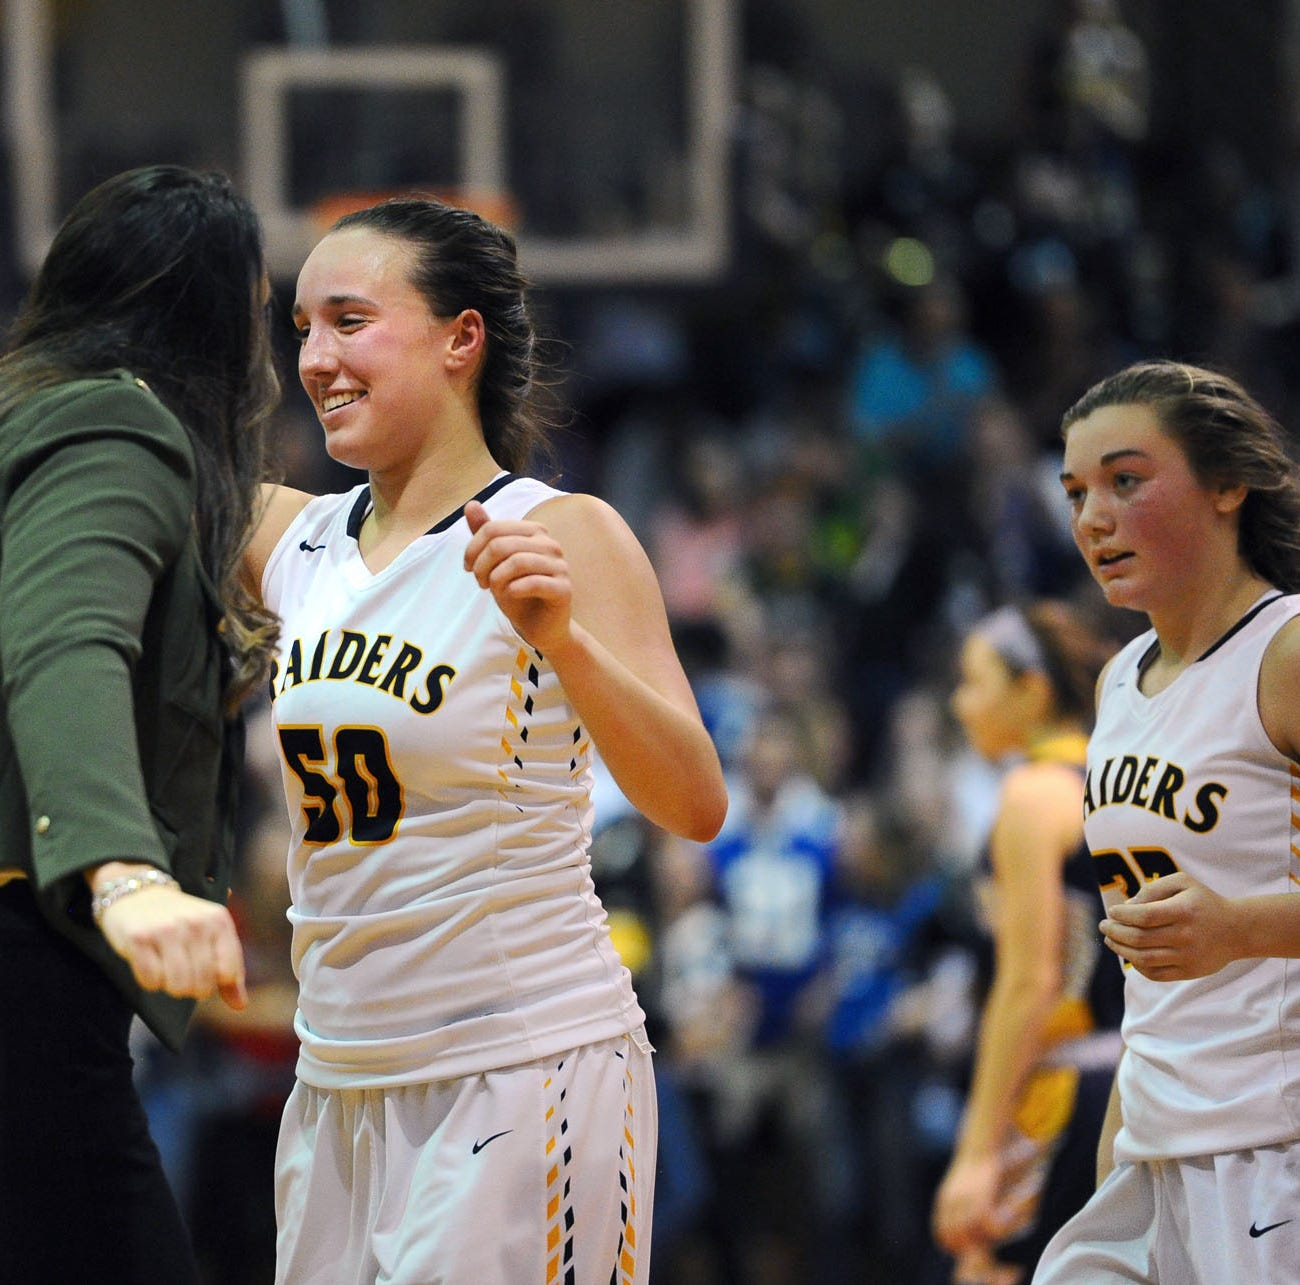 Shuey comes up big again as Elco edges Eastern York, earns state berth